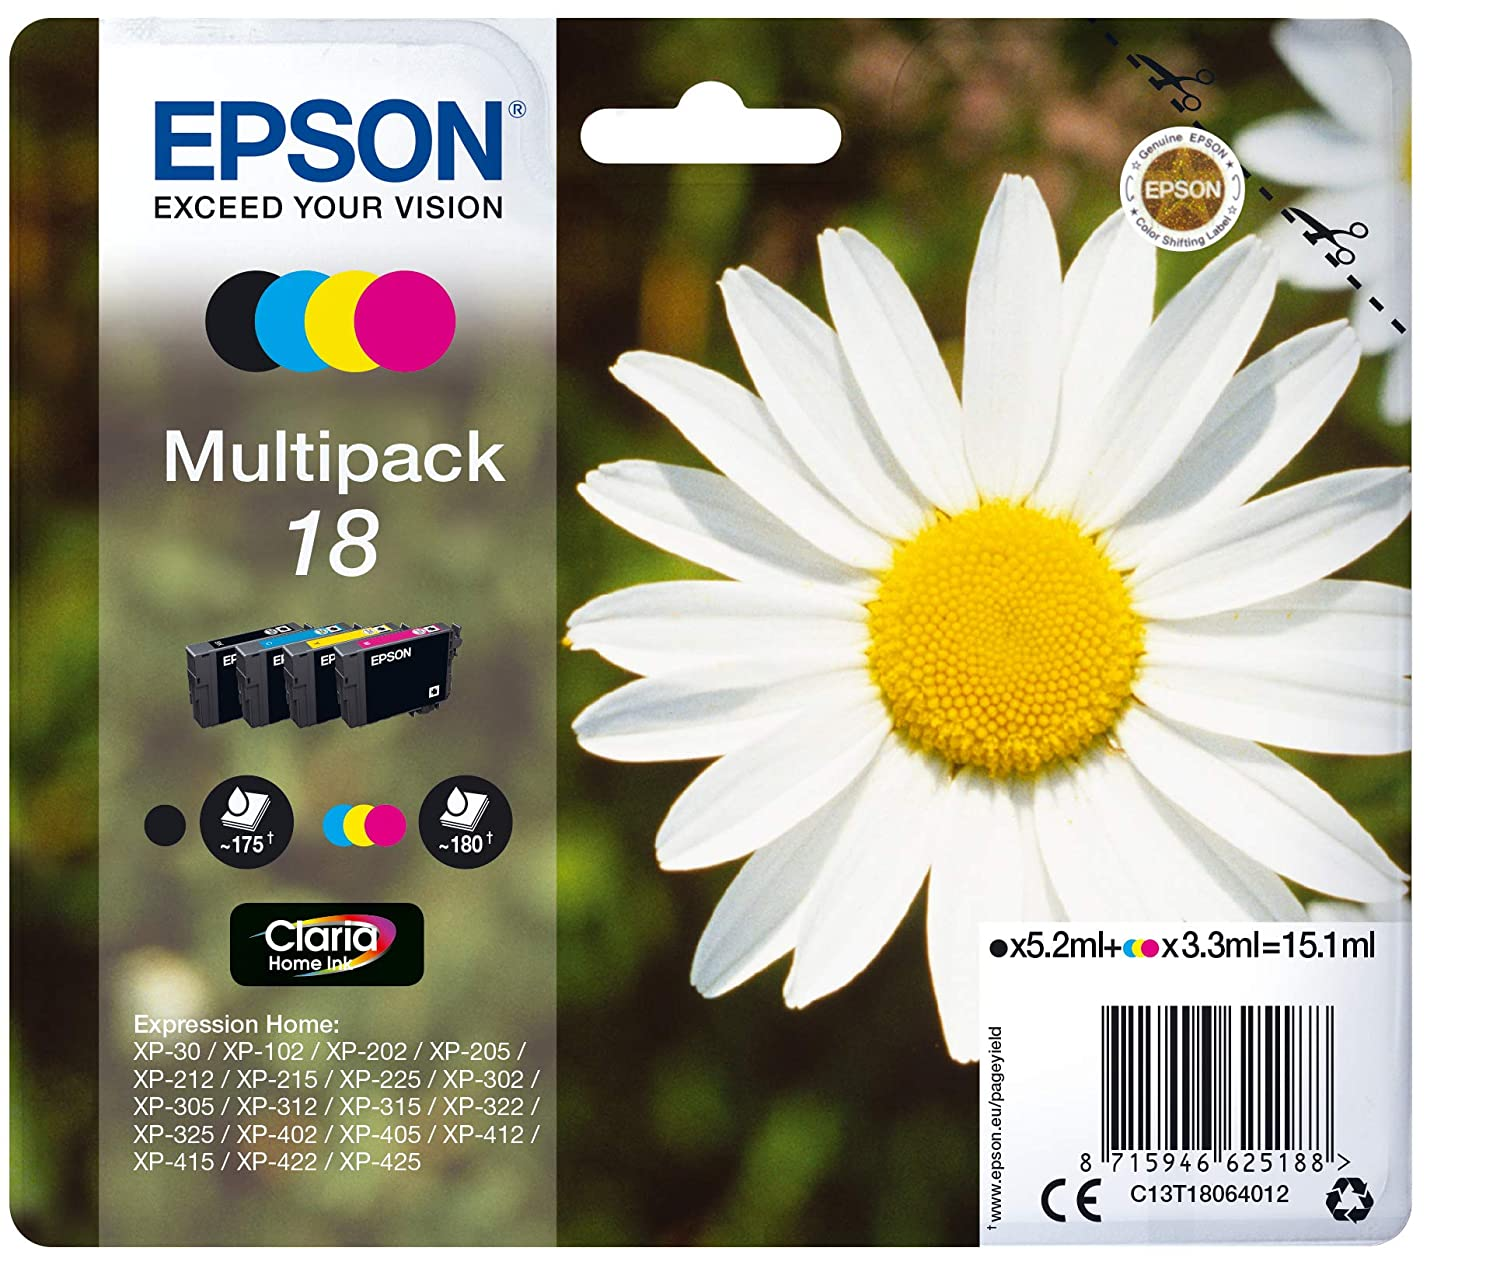 Multipack 18 4 colores (etiqueta RF): Amazon.es: Informática